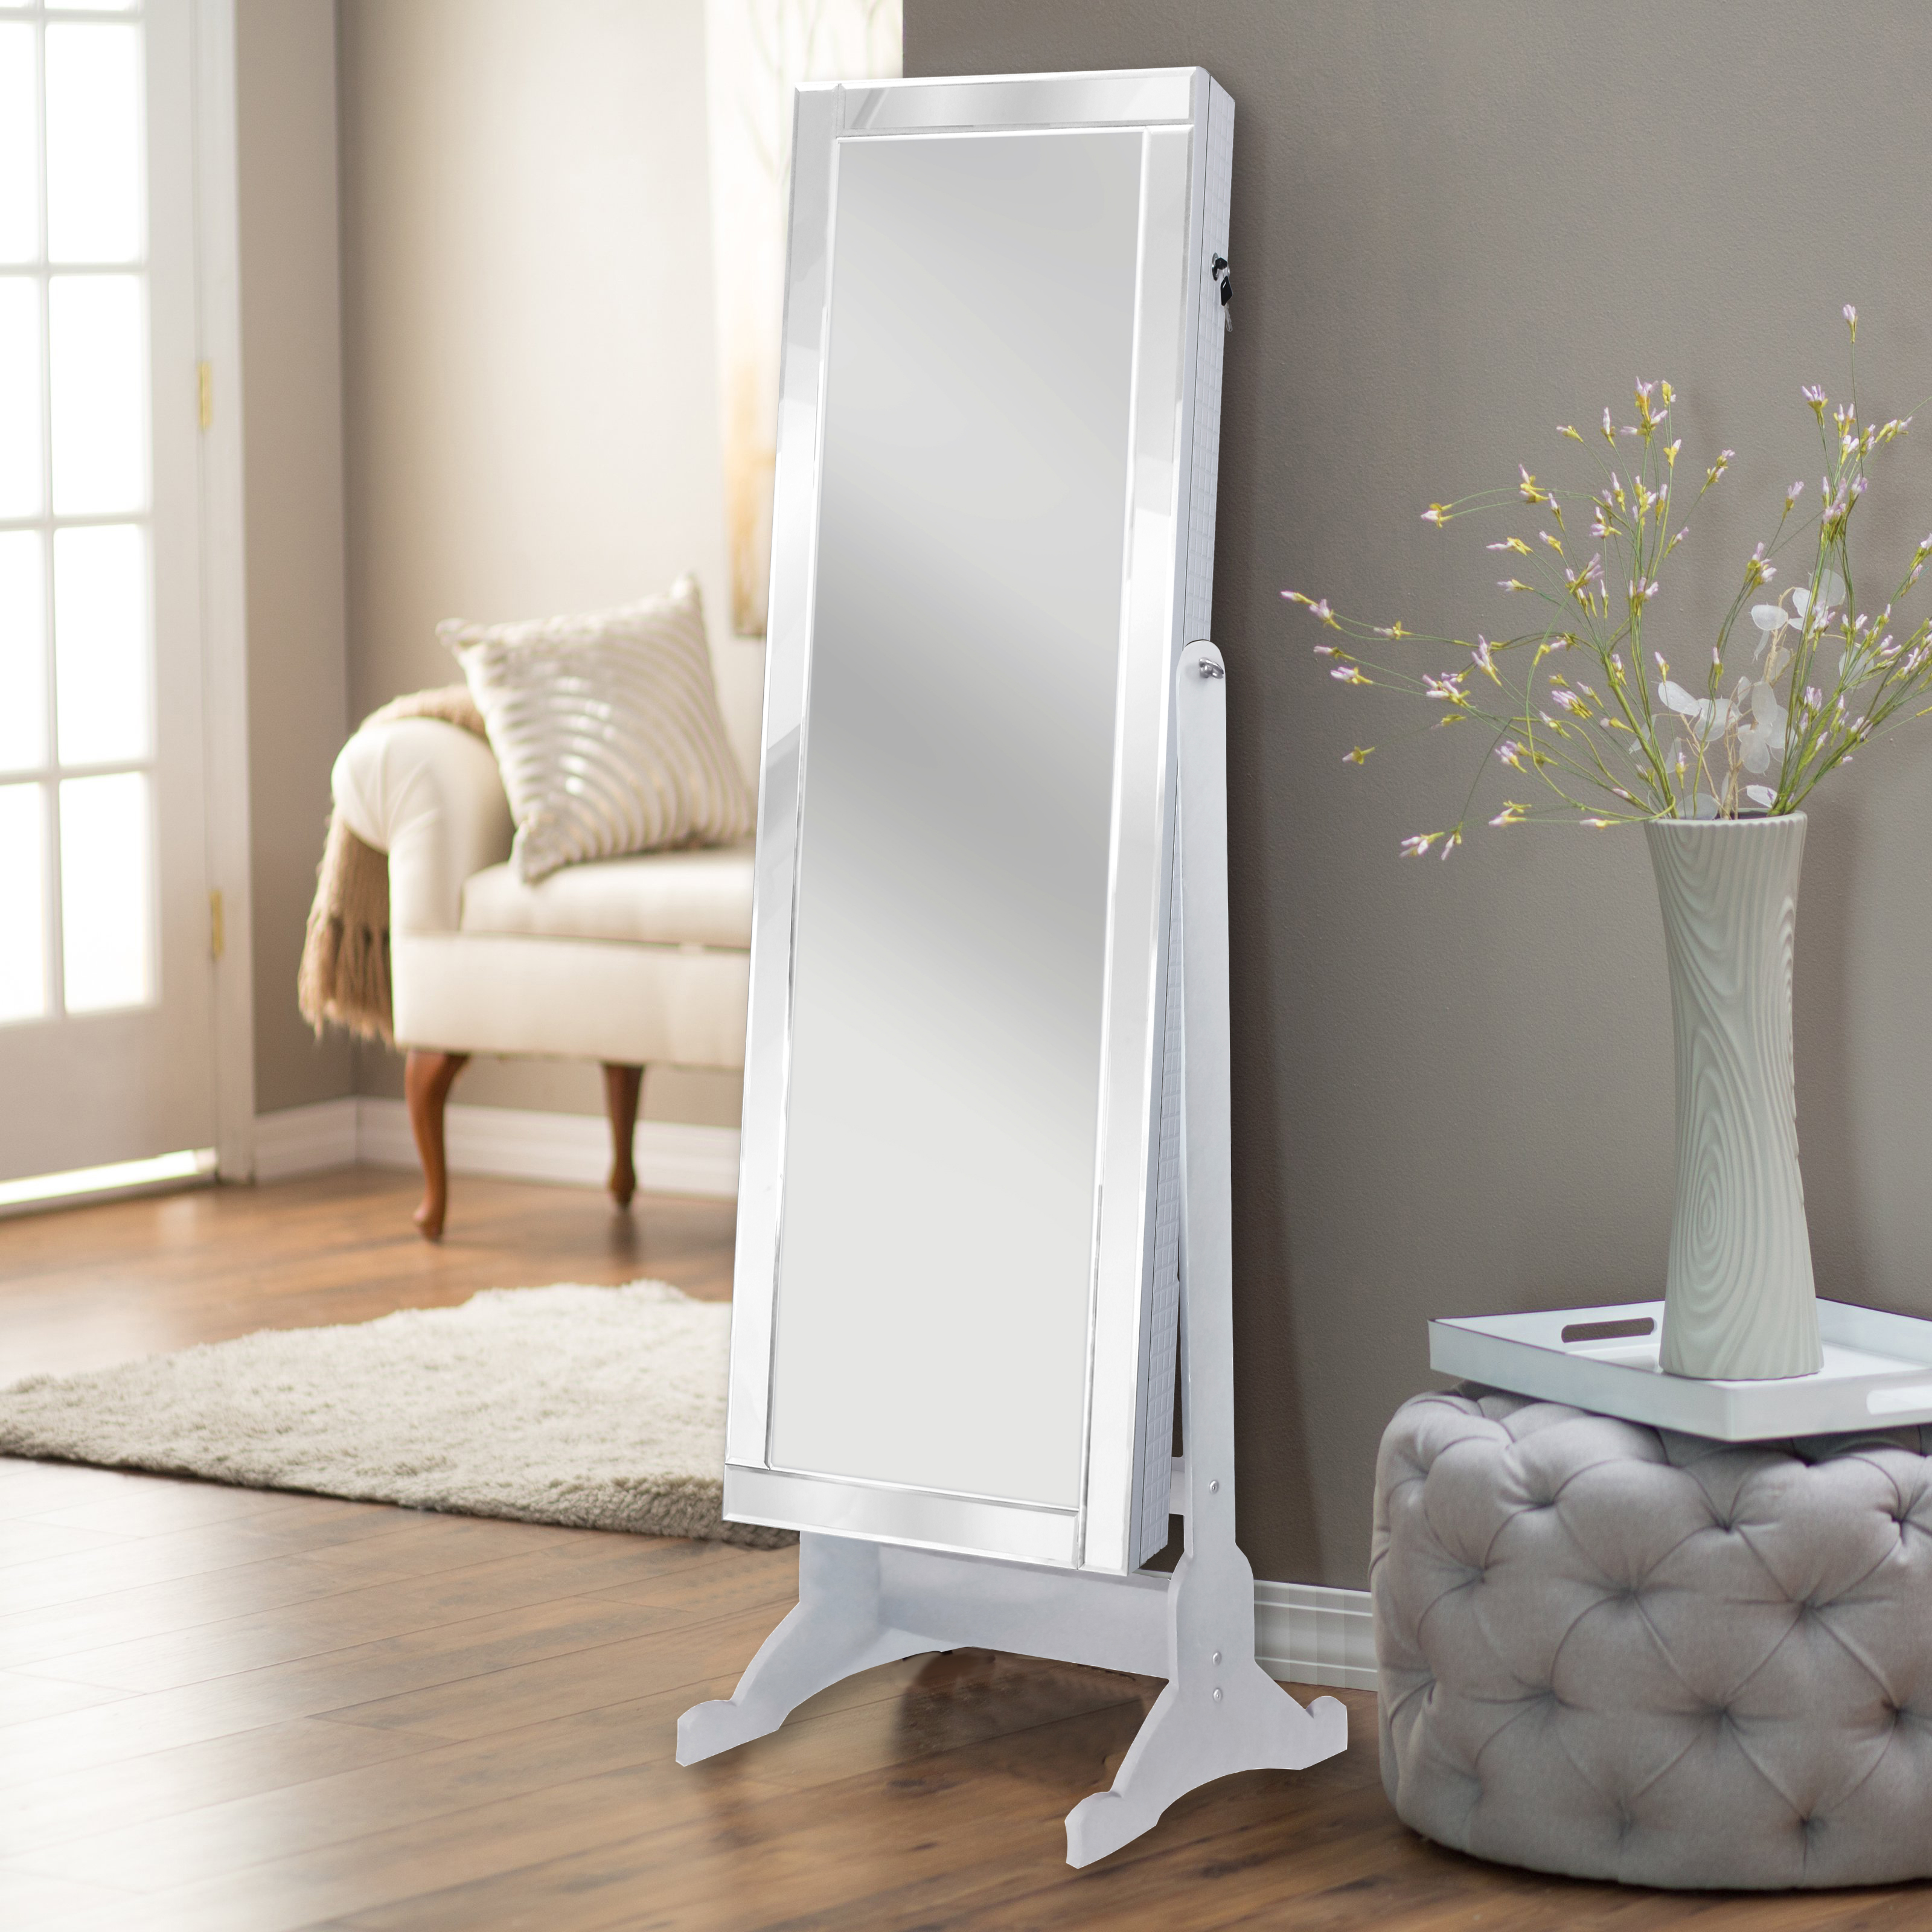 Chic Home Glam Mirror Border and Jewelry Armoire Cheval f1aad8594f30